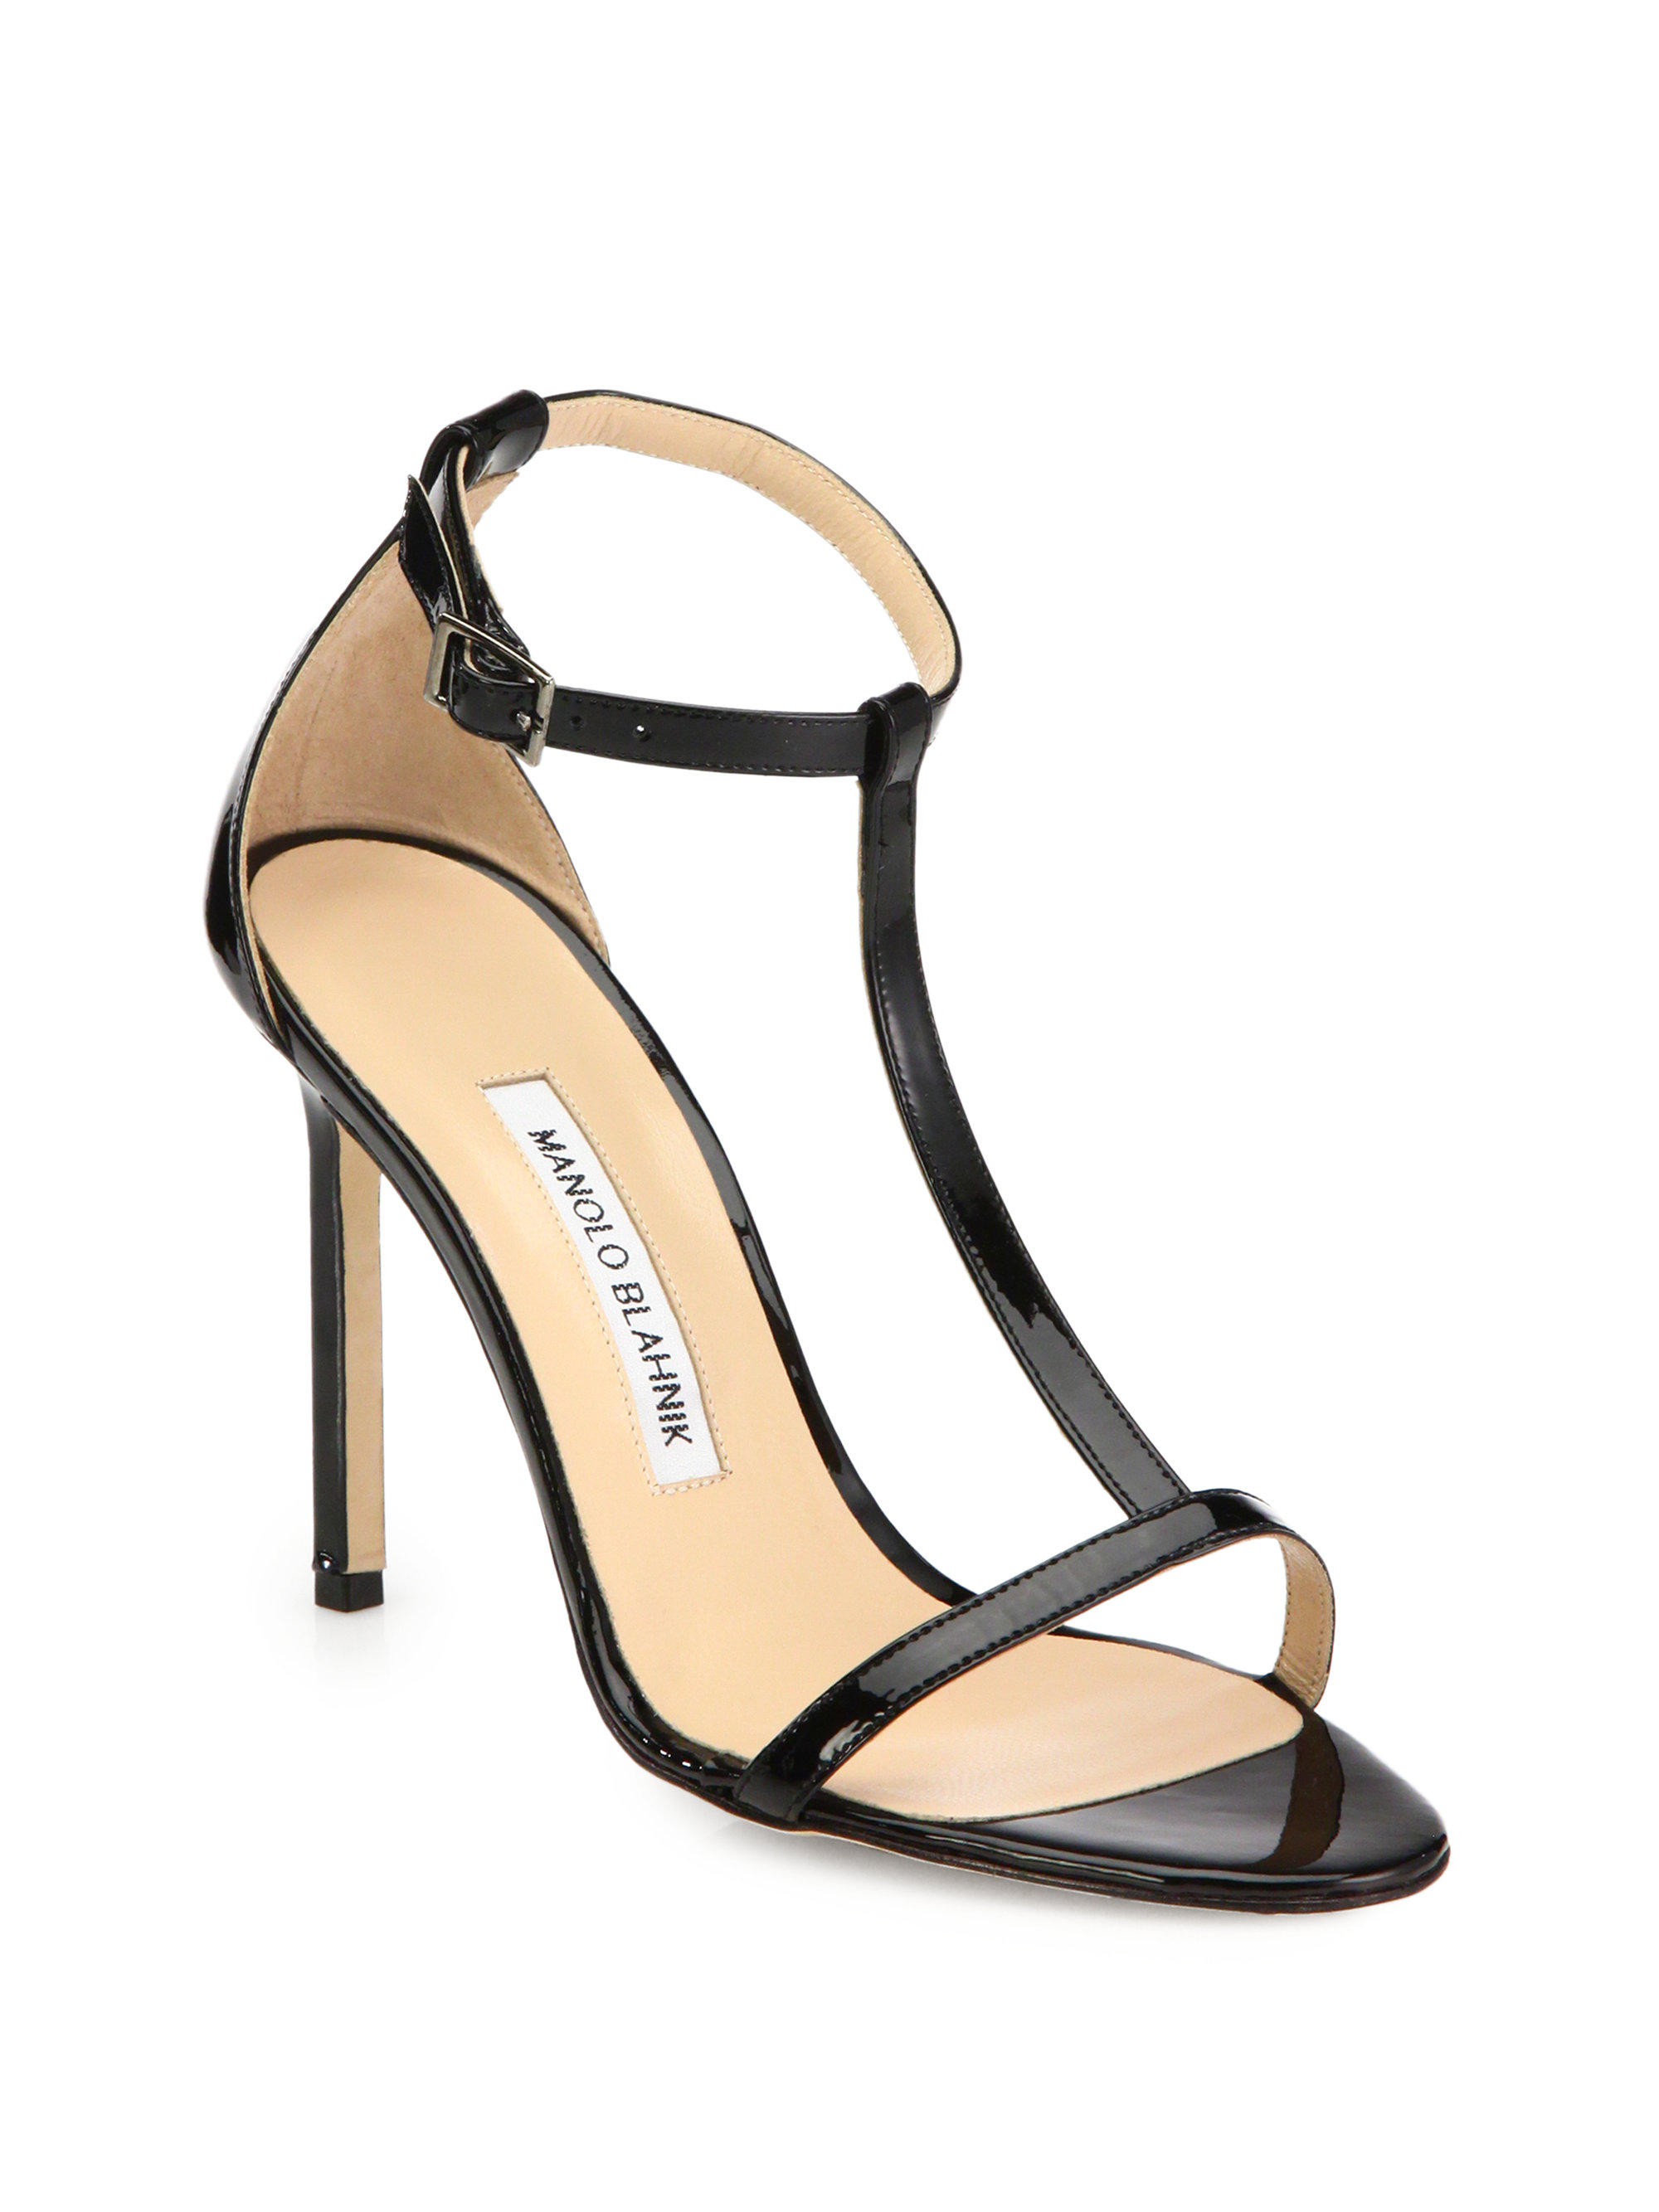 Manolo Blahnik Alligator Ankle Strap Pumps Cheapest pay with visa online clearance fast delivery buy cheap low shipping fee F68Cg